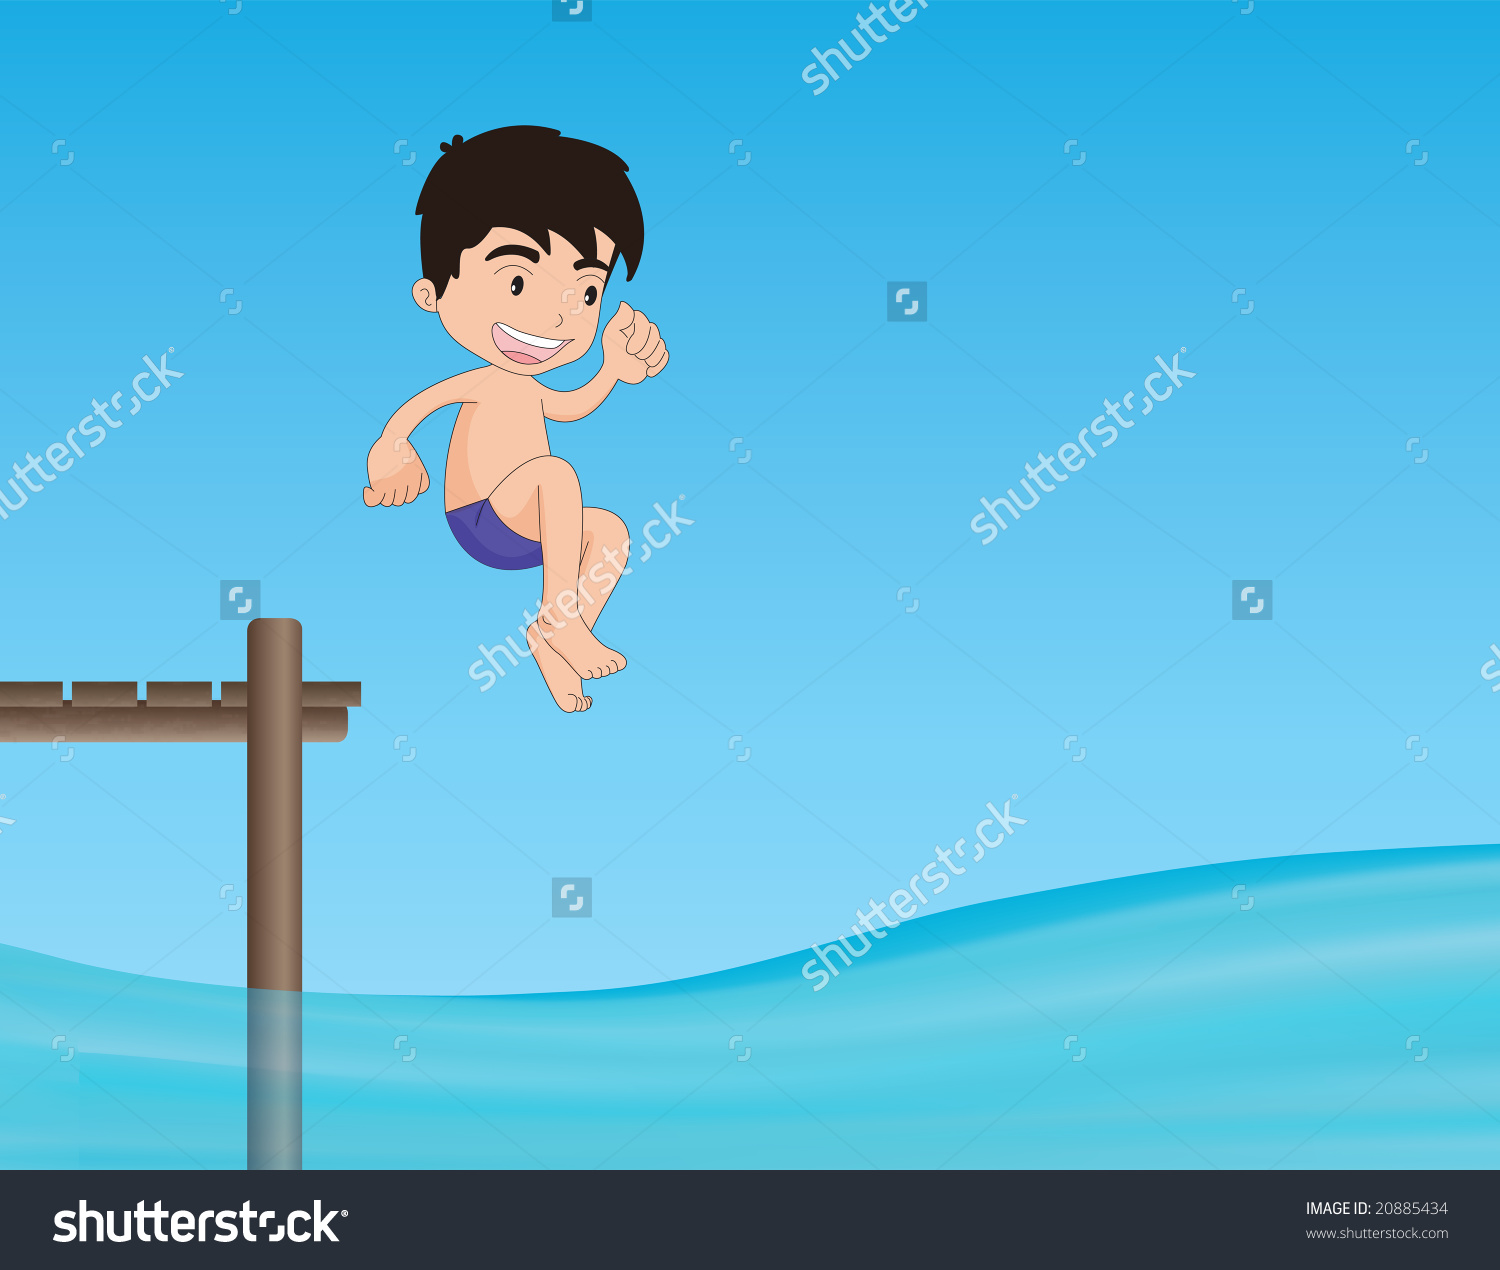 Young Boy Jumping From A Jetty Illustration.